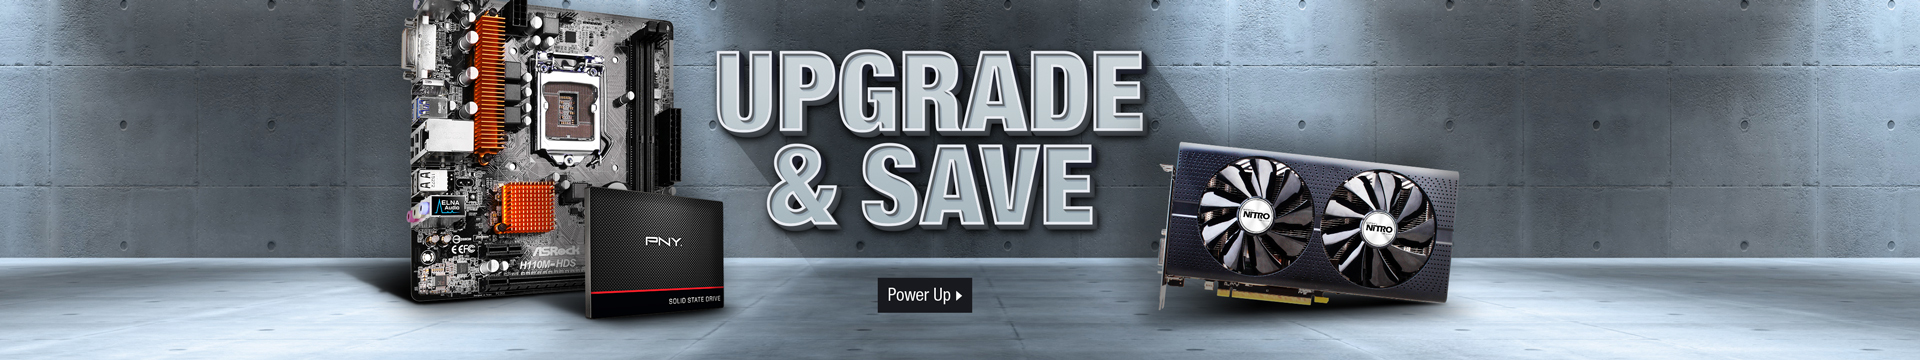 UPGRADE AND SAVE